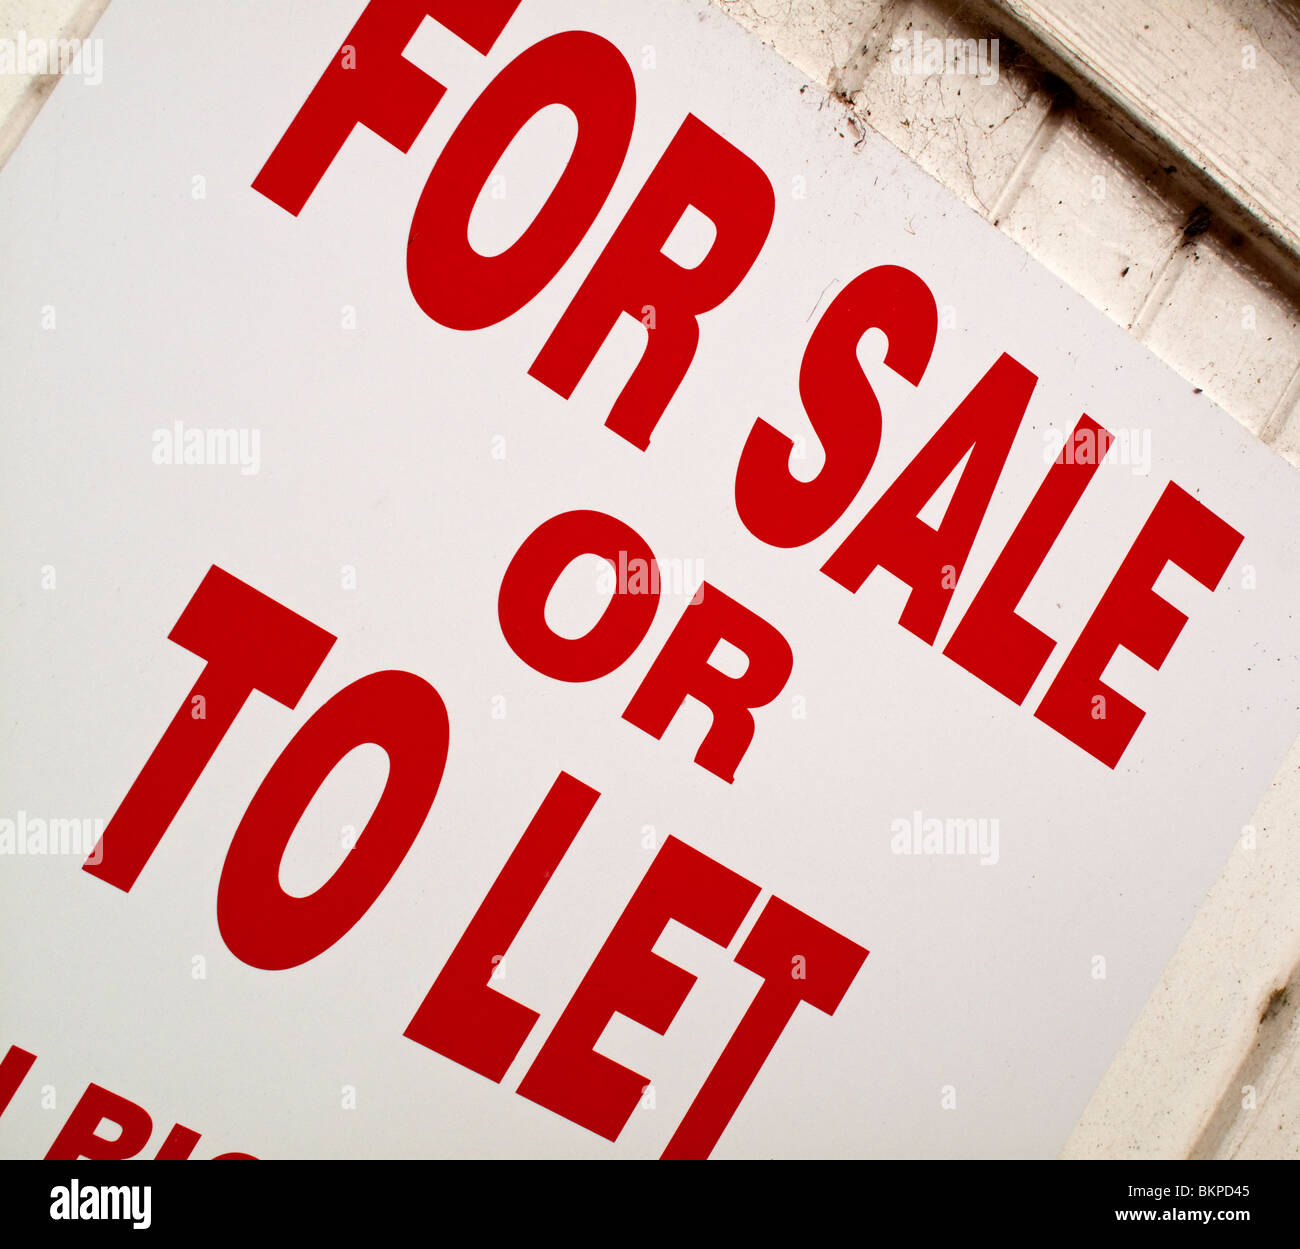 Sign Letters For Sale For Sale Or To Let Sign With Red Letters Against A White